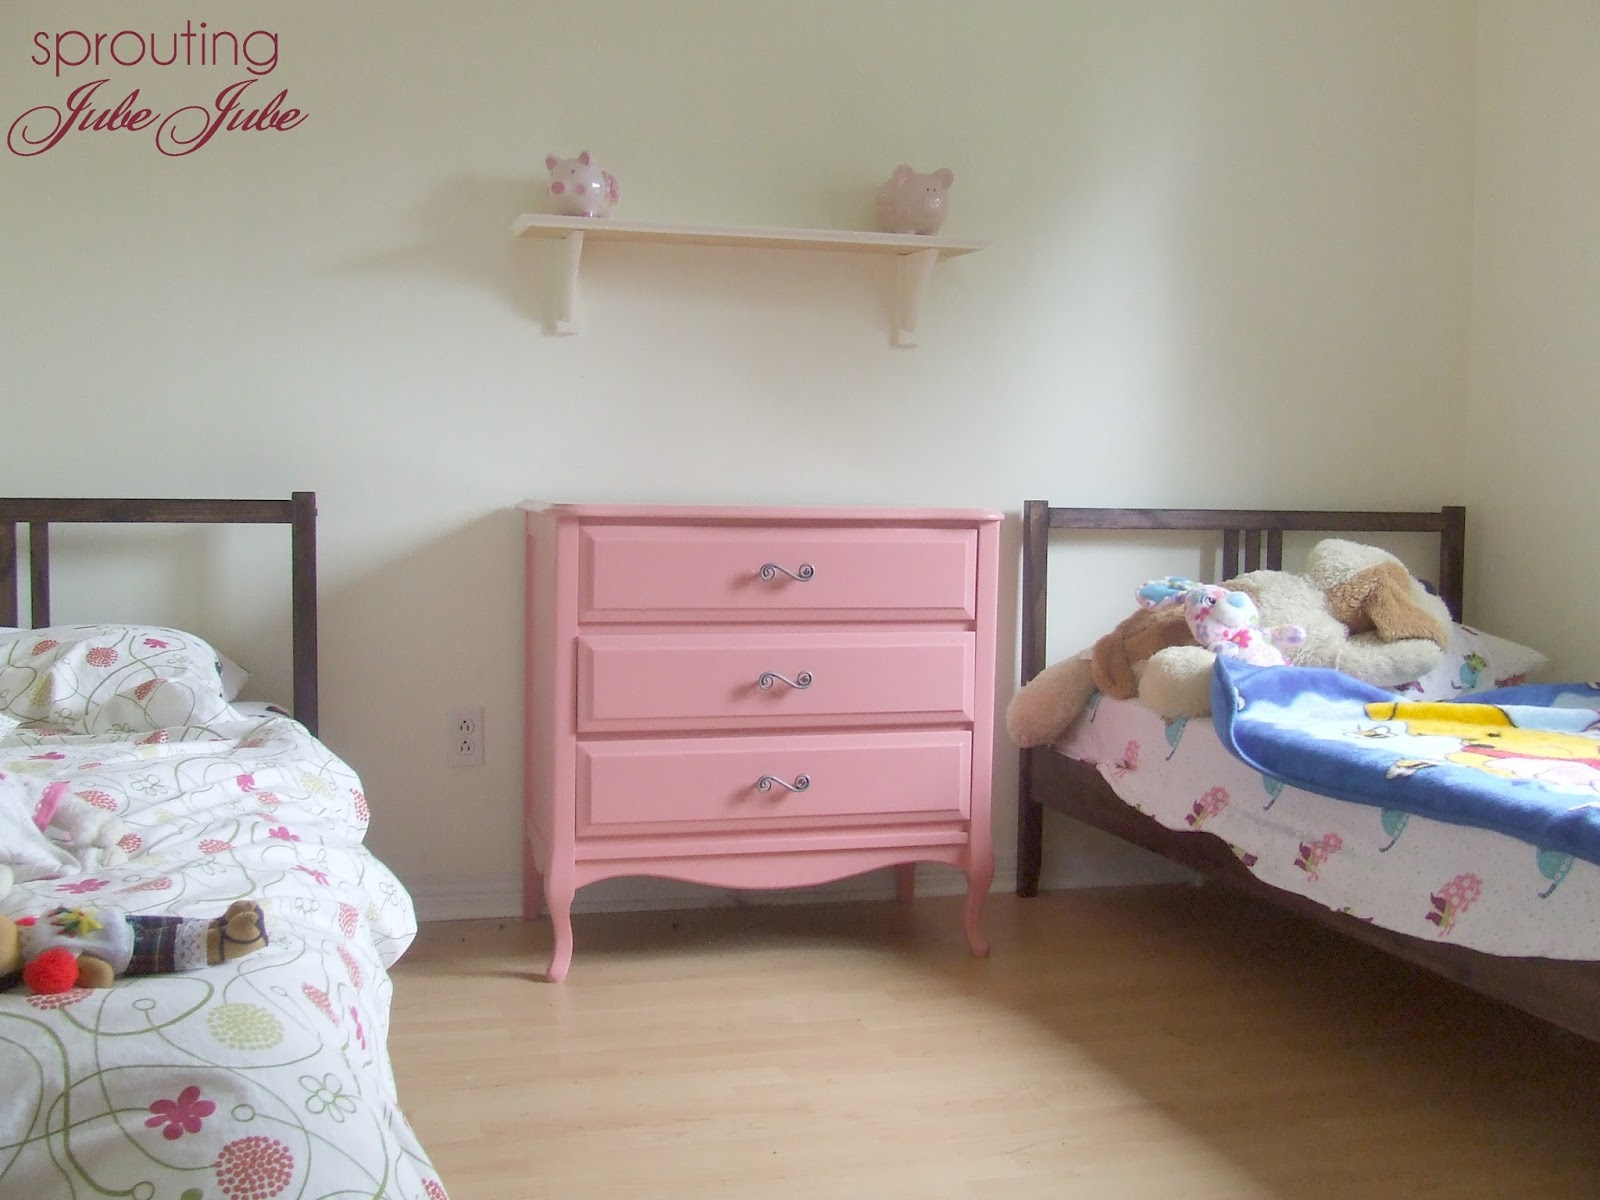 Sprouting jubejube bedroom redo for little girls on a budget How to redo a bedroom cheap